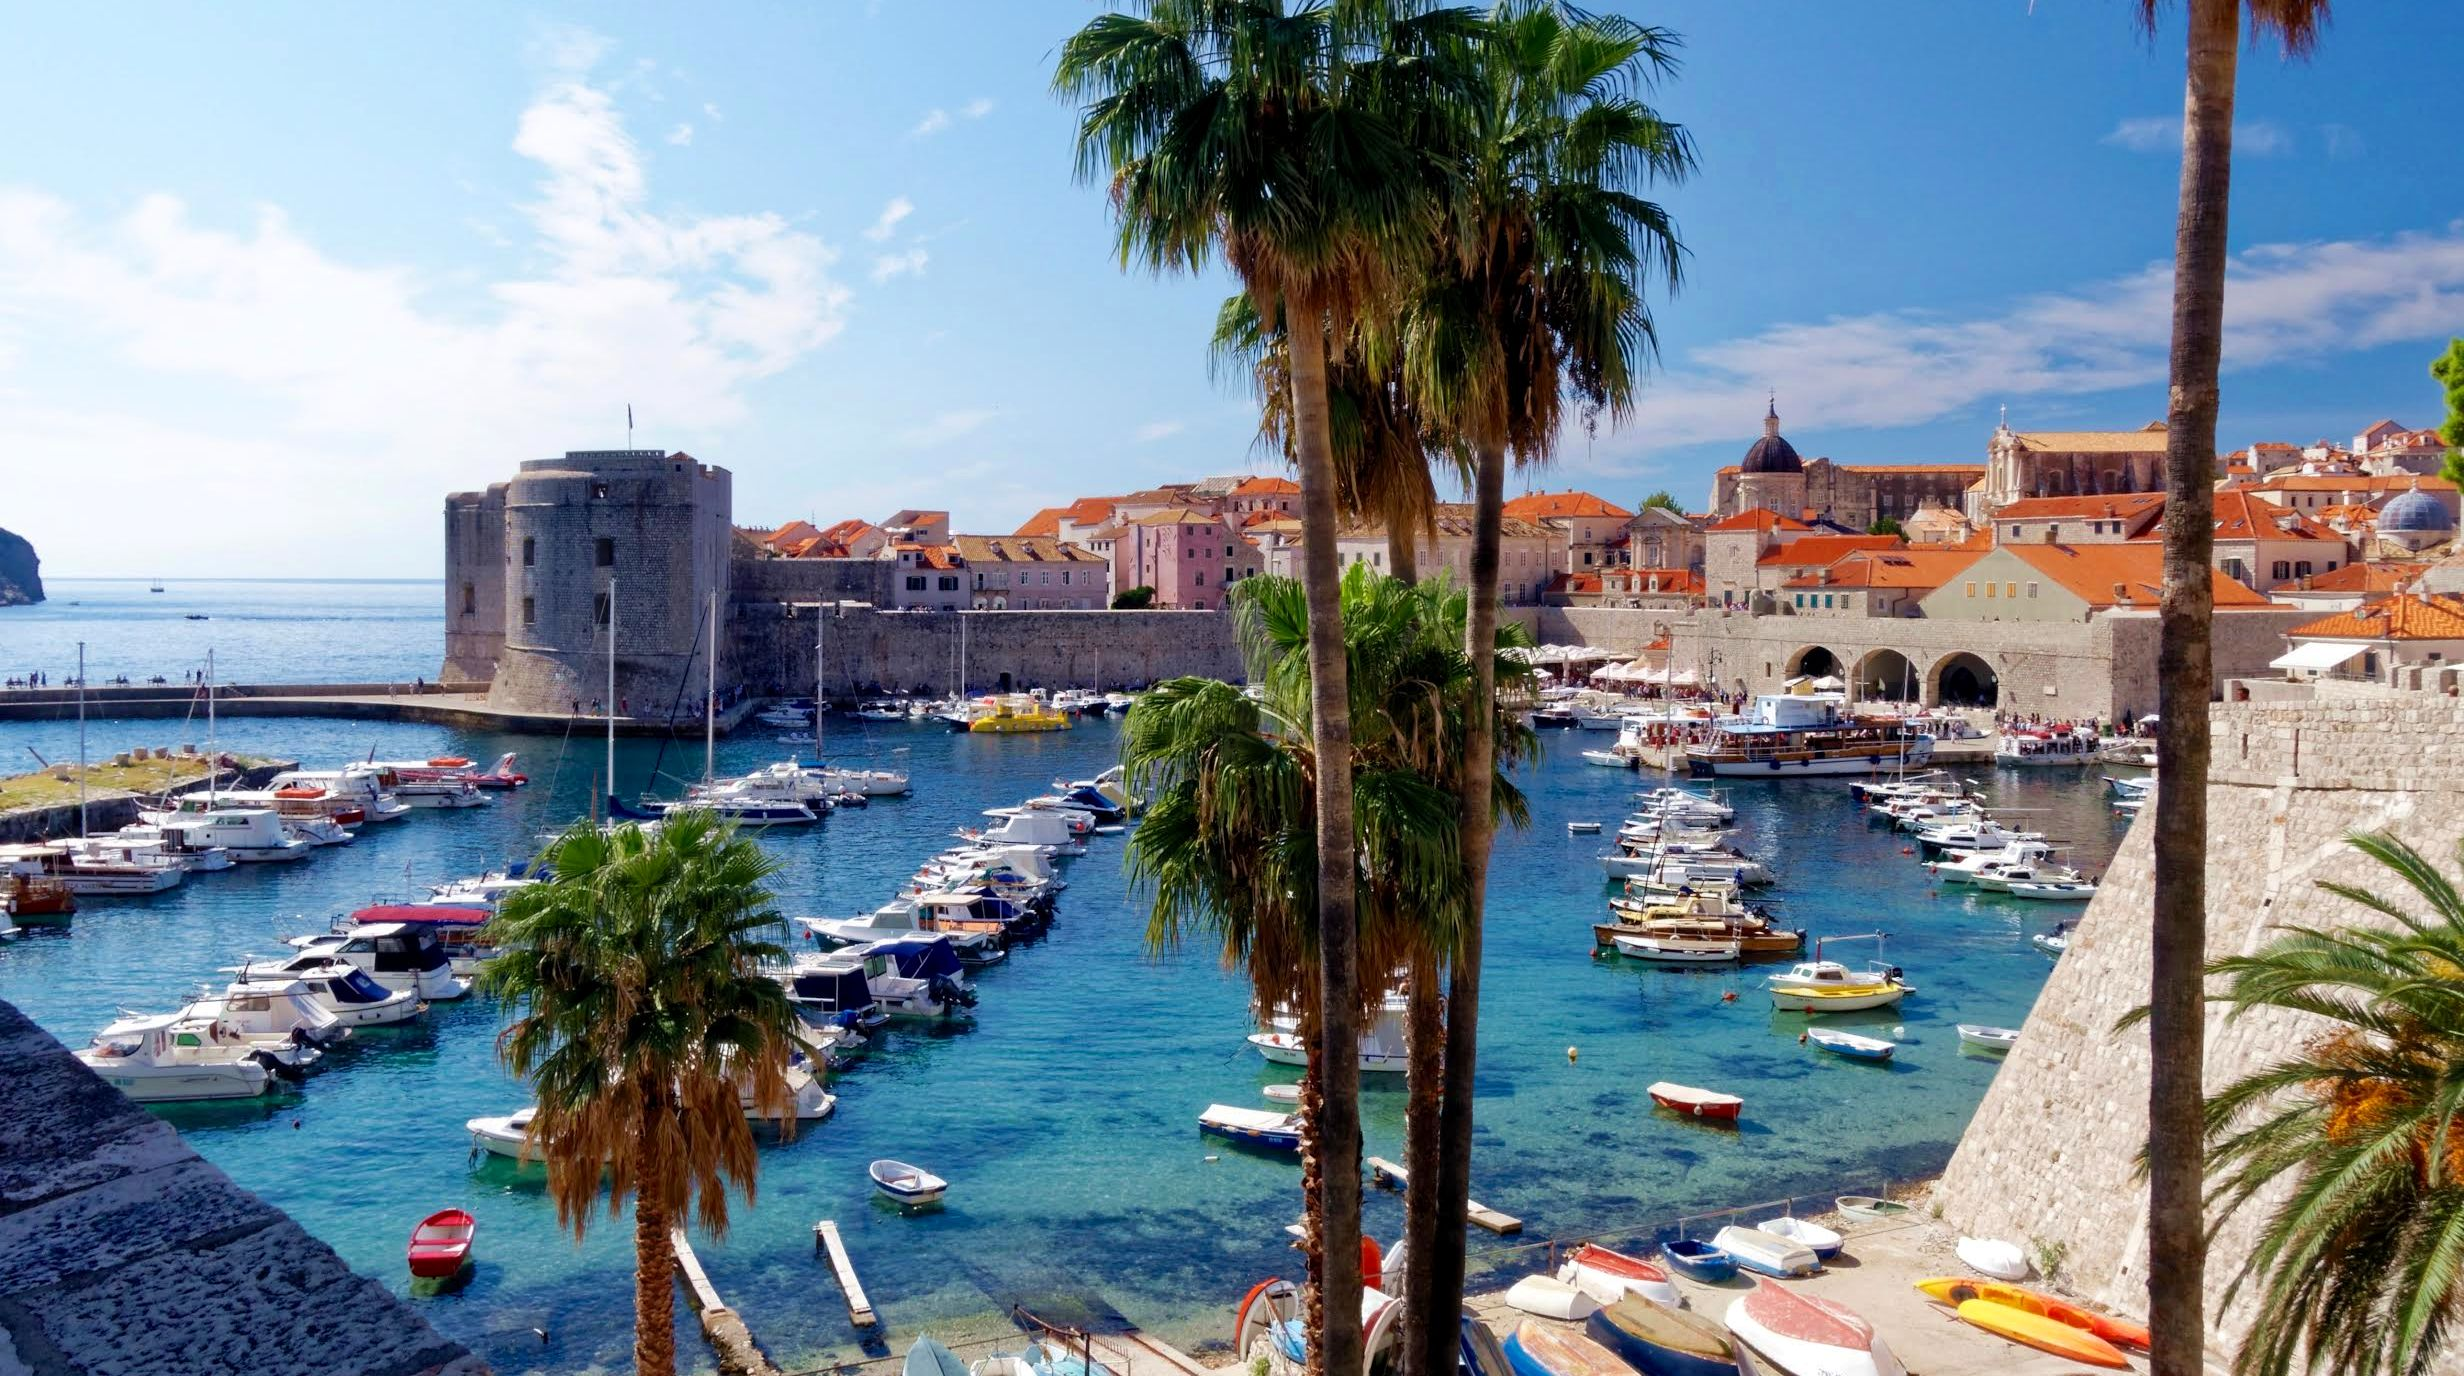 Dubrovnik Istria On New York Times 52 Places To Go In 2017 List